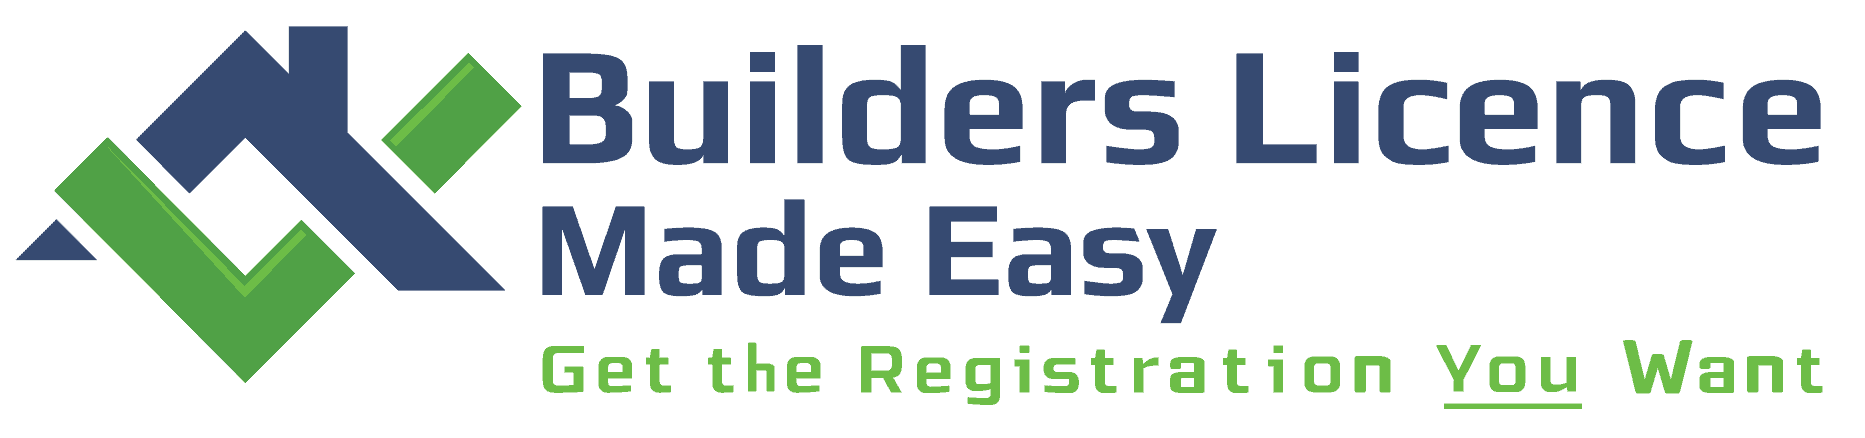 Builders Licence Made Easy